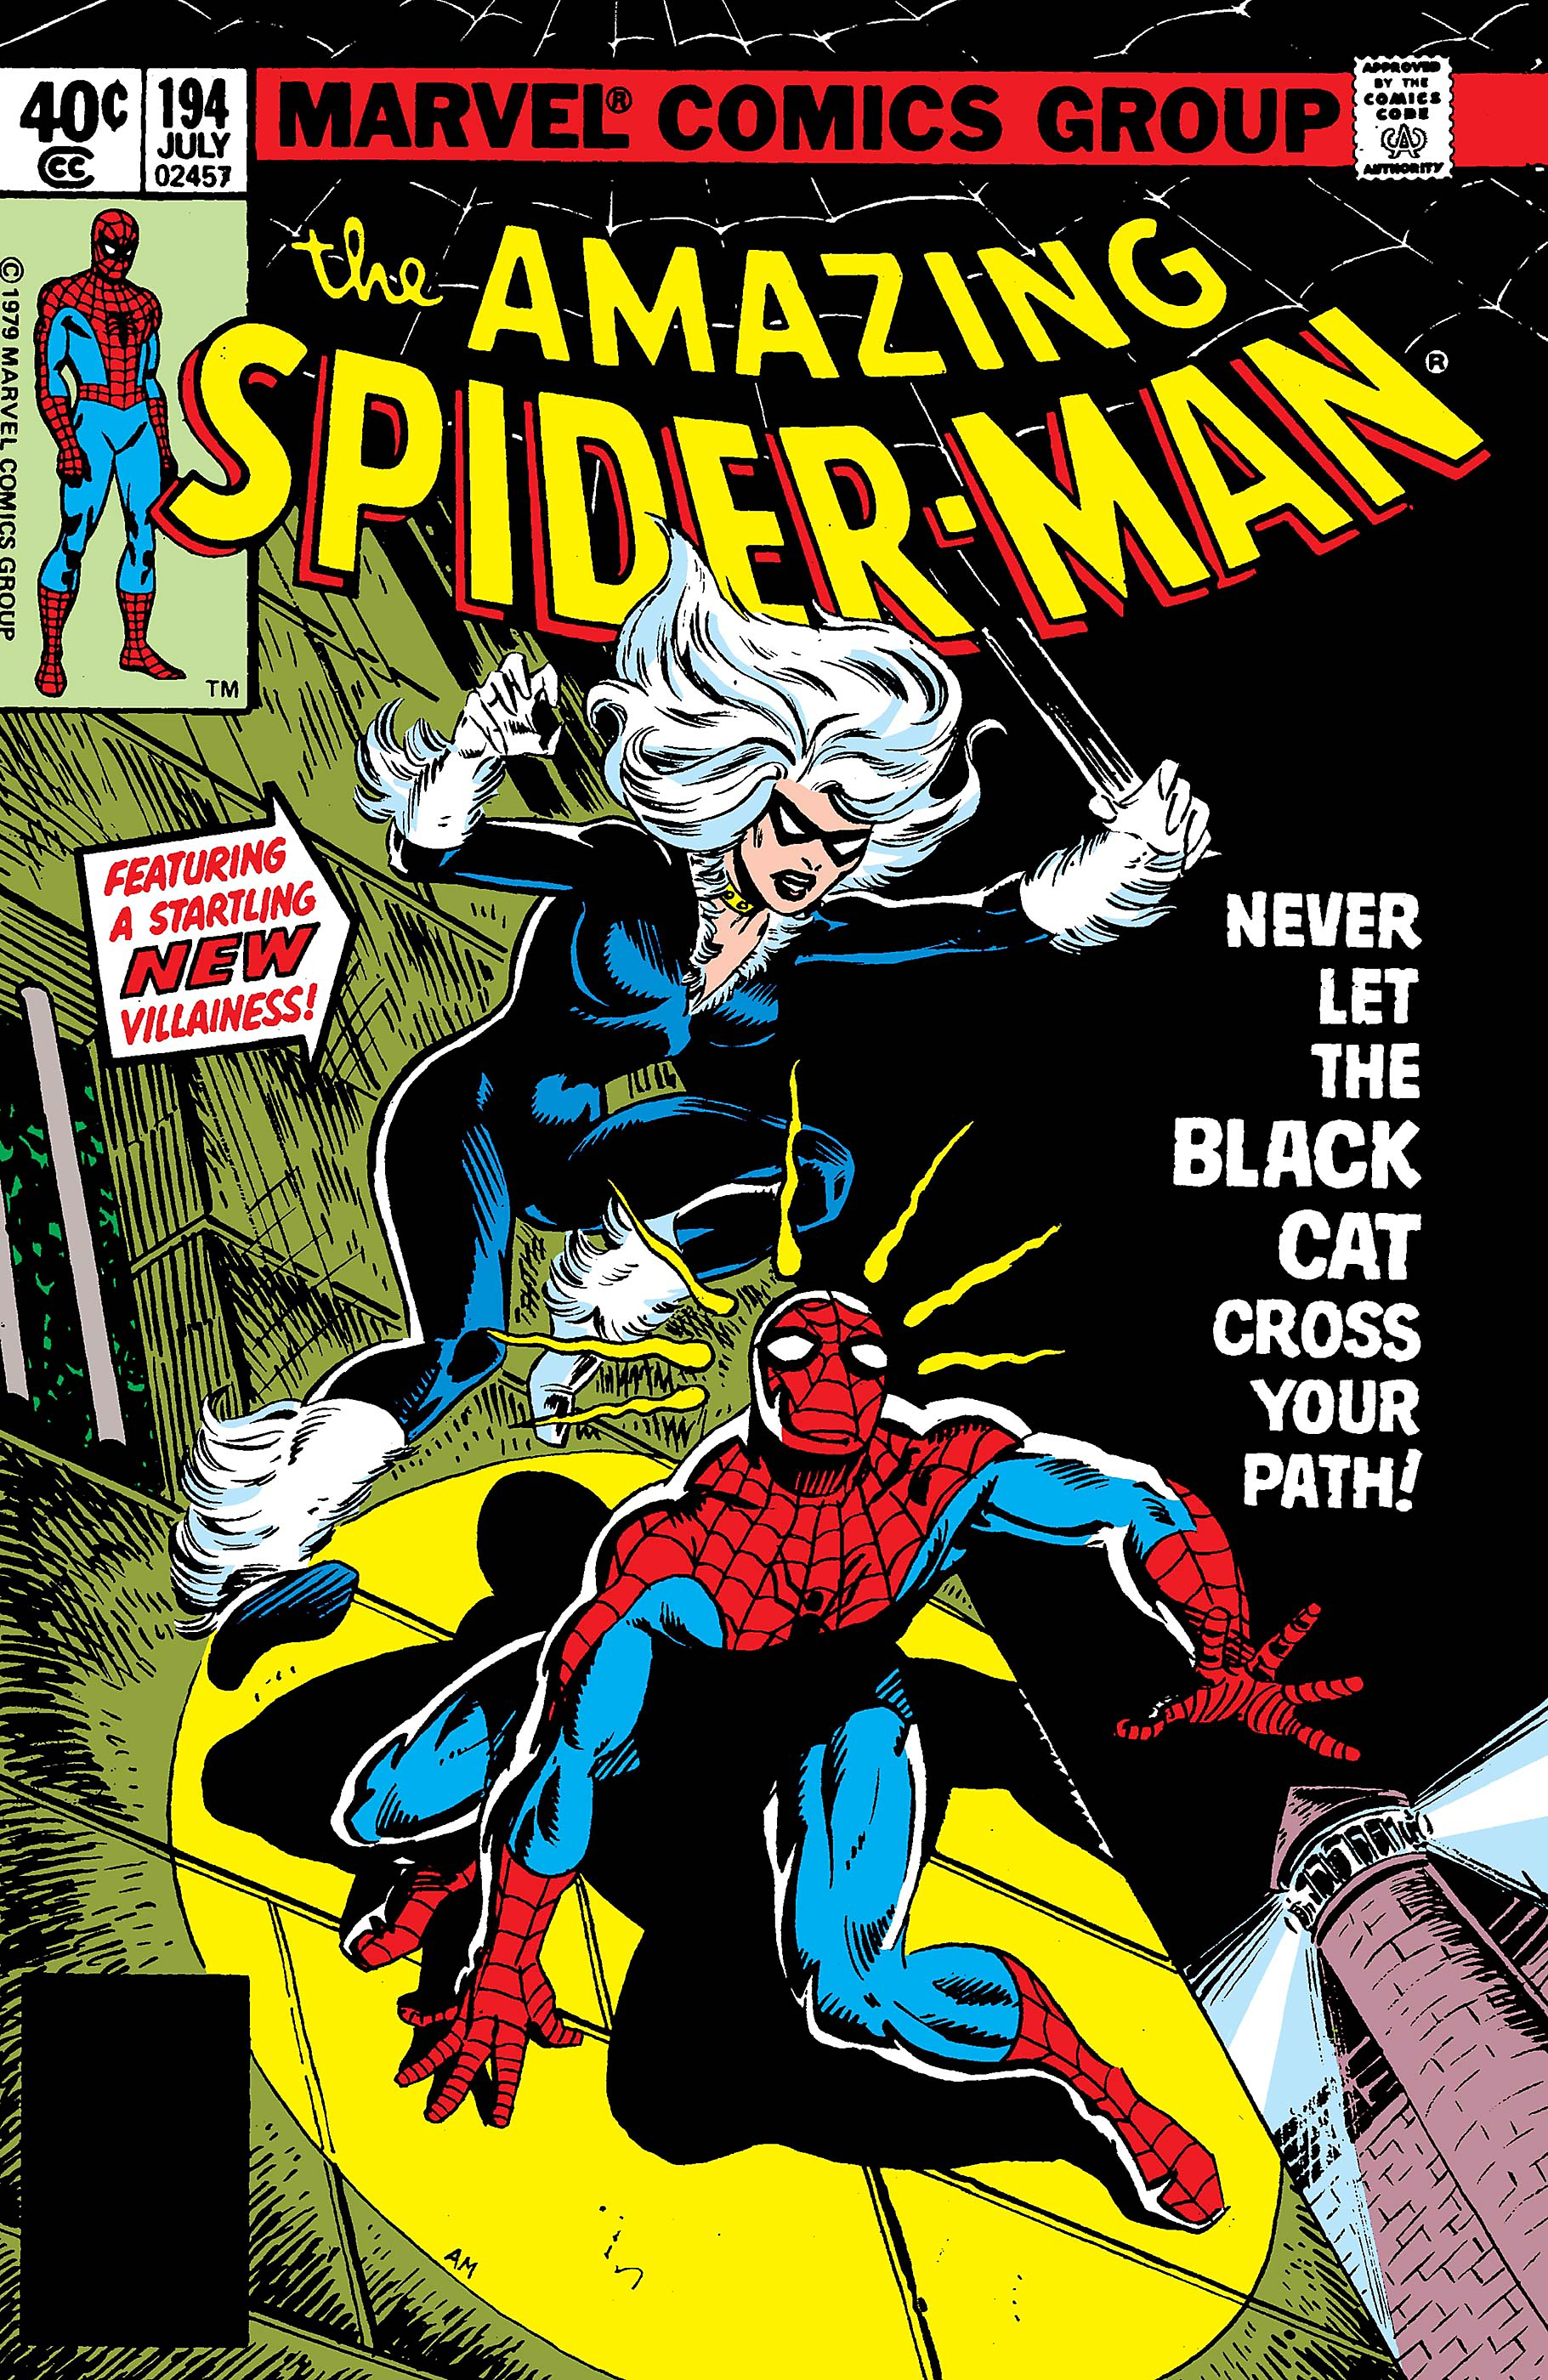 spider-man heist reading list comic